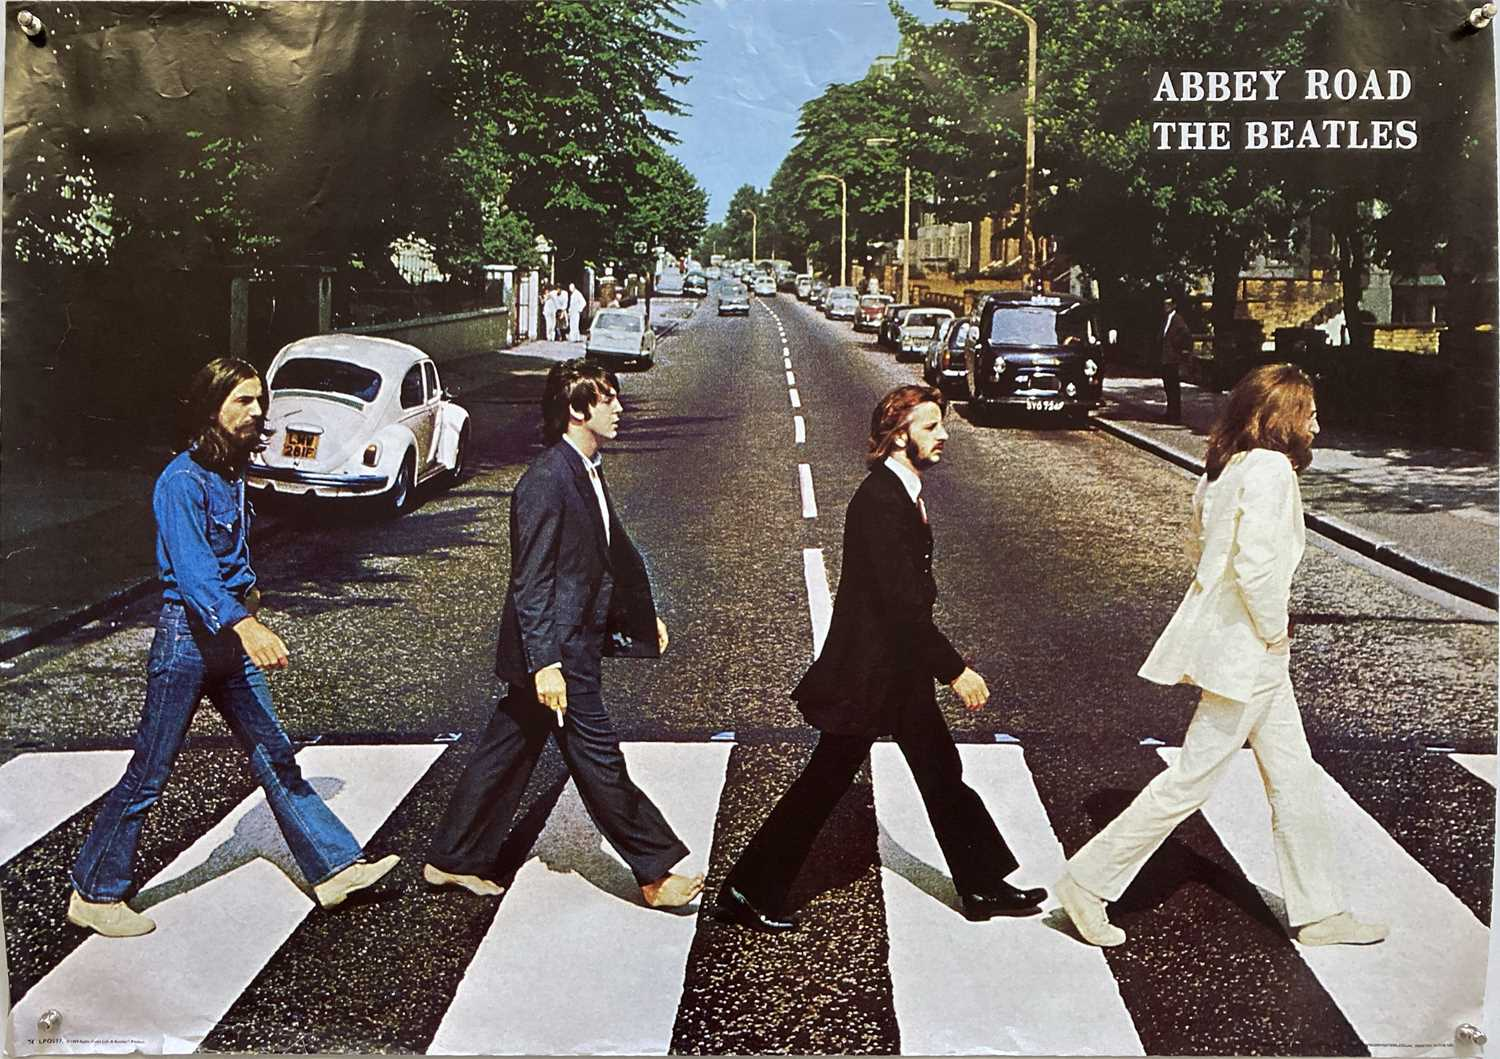 BEATLES / ROLLING STONES POSTERS. - Image 8 of 8